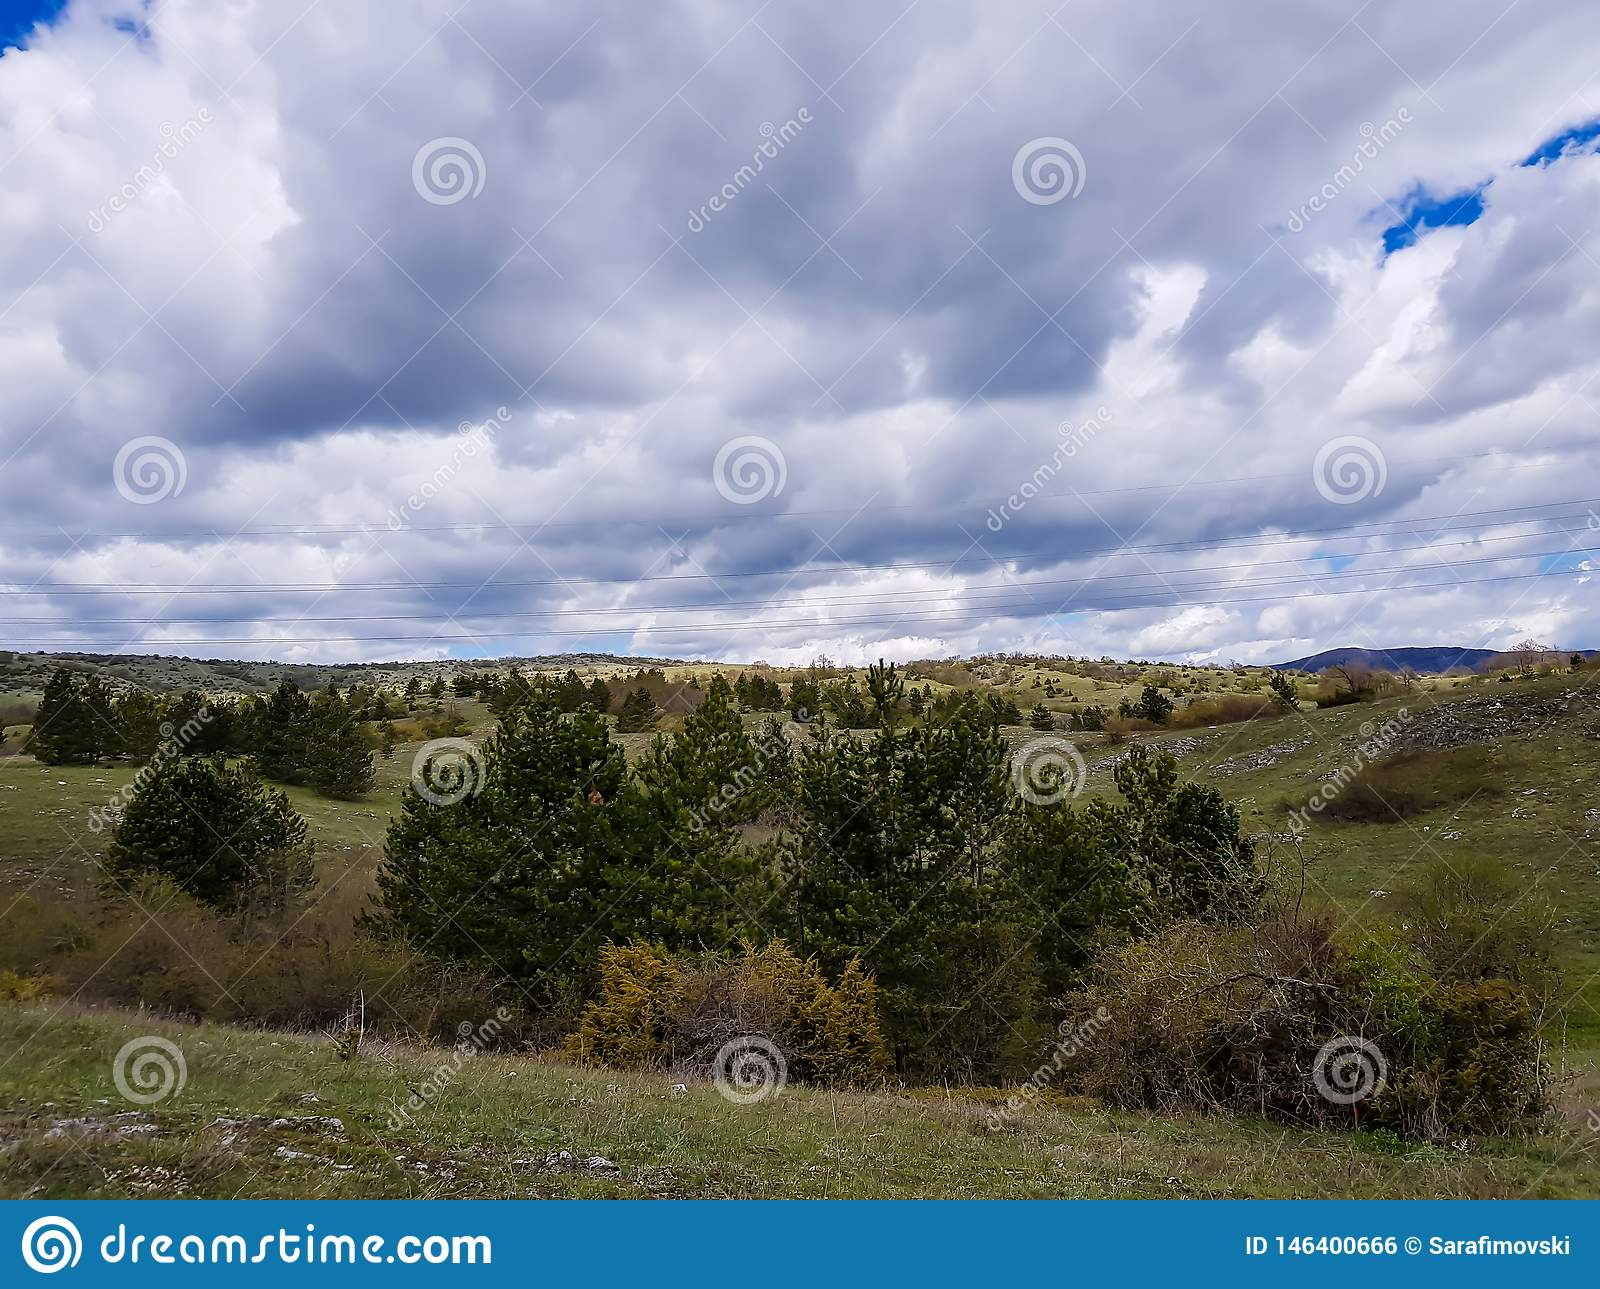 Mountainous springtime countryside, wonderful landscape with grassy meadow and forested hills